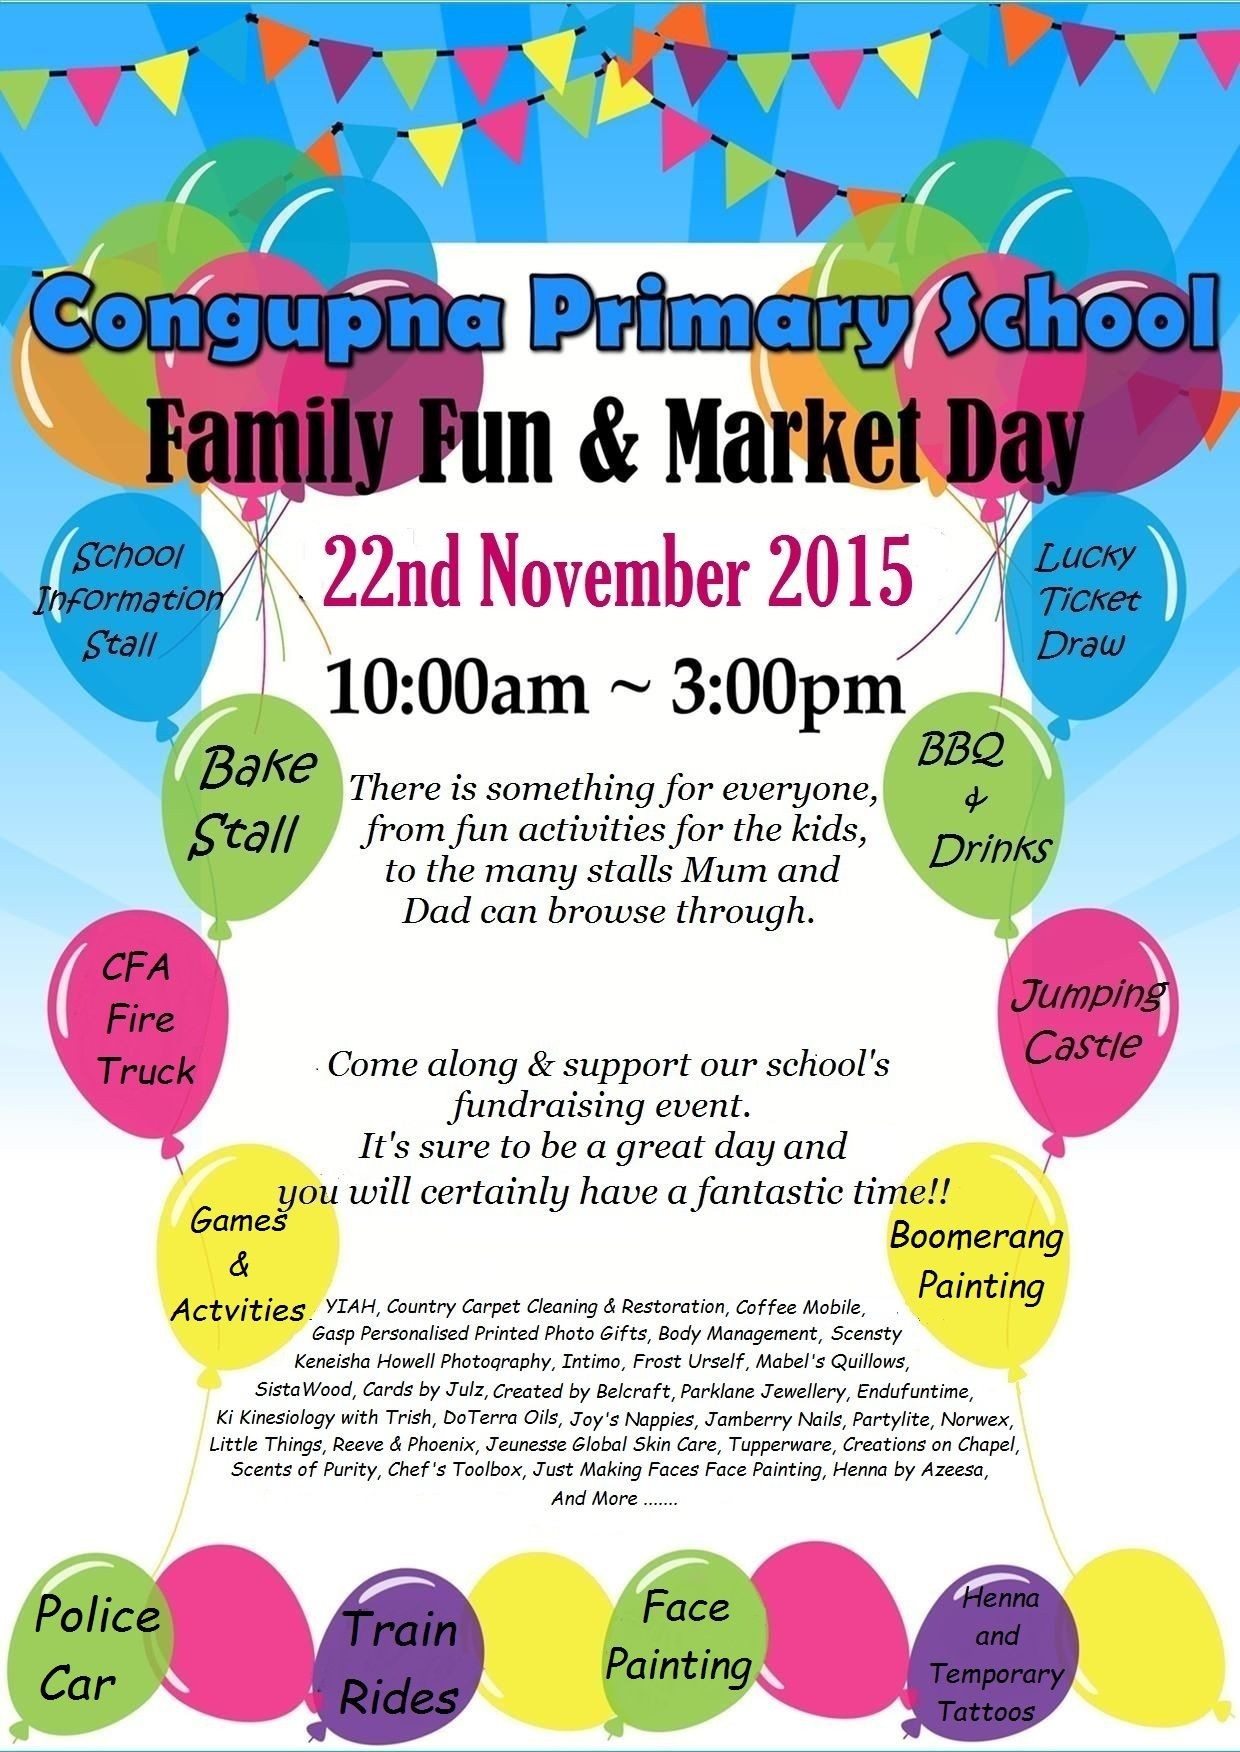 congupna primary school family fun market day greater when sun 22 nov 2015 sunday 22nd of 2015 at 10 00am to 3 00pm where congupna primary school katamatite shepparton rd cost